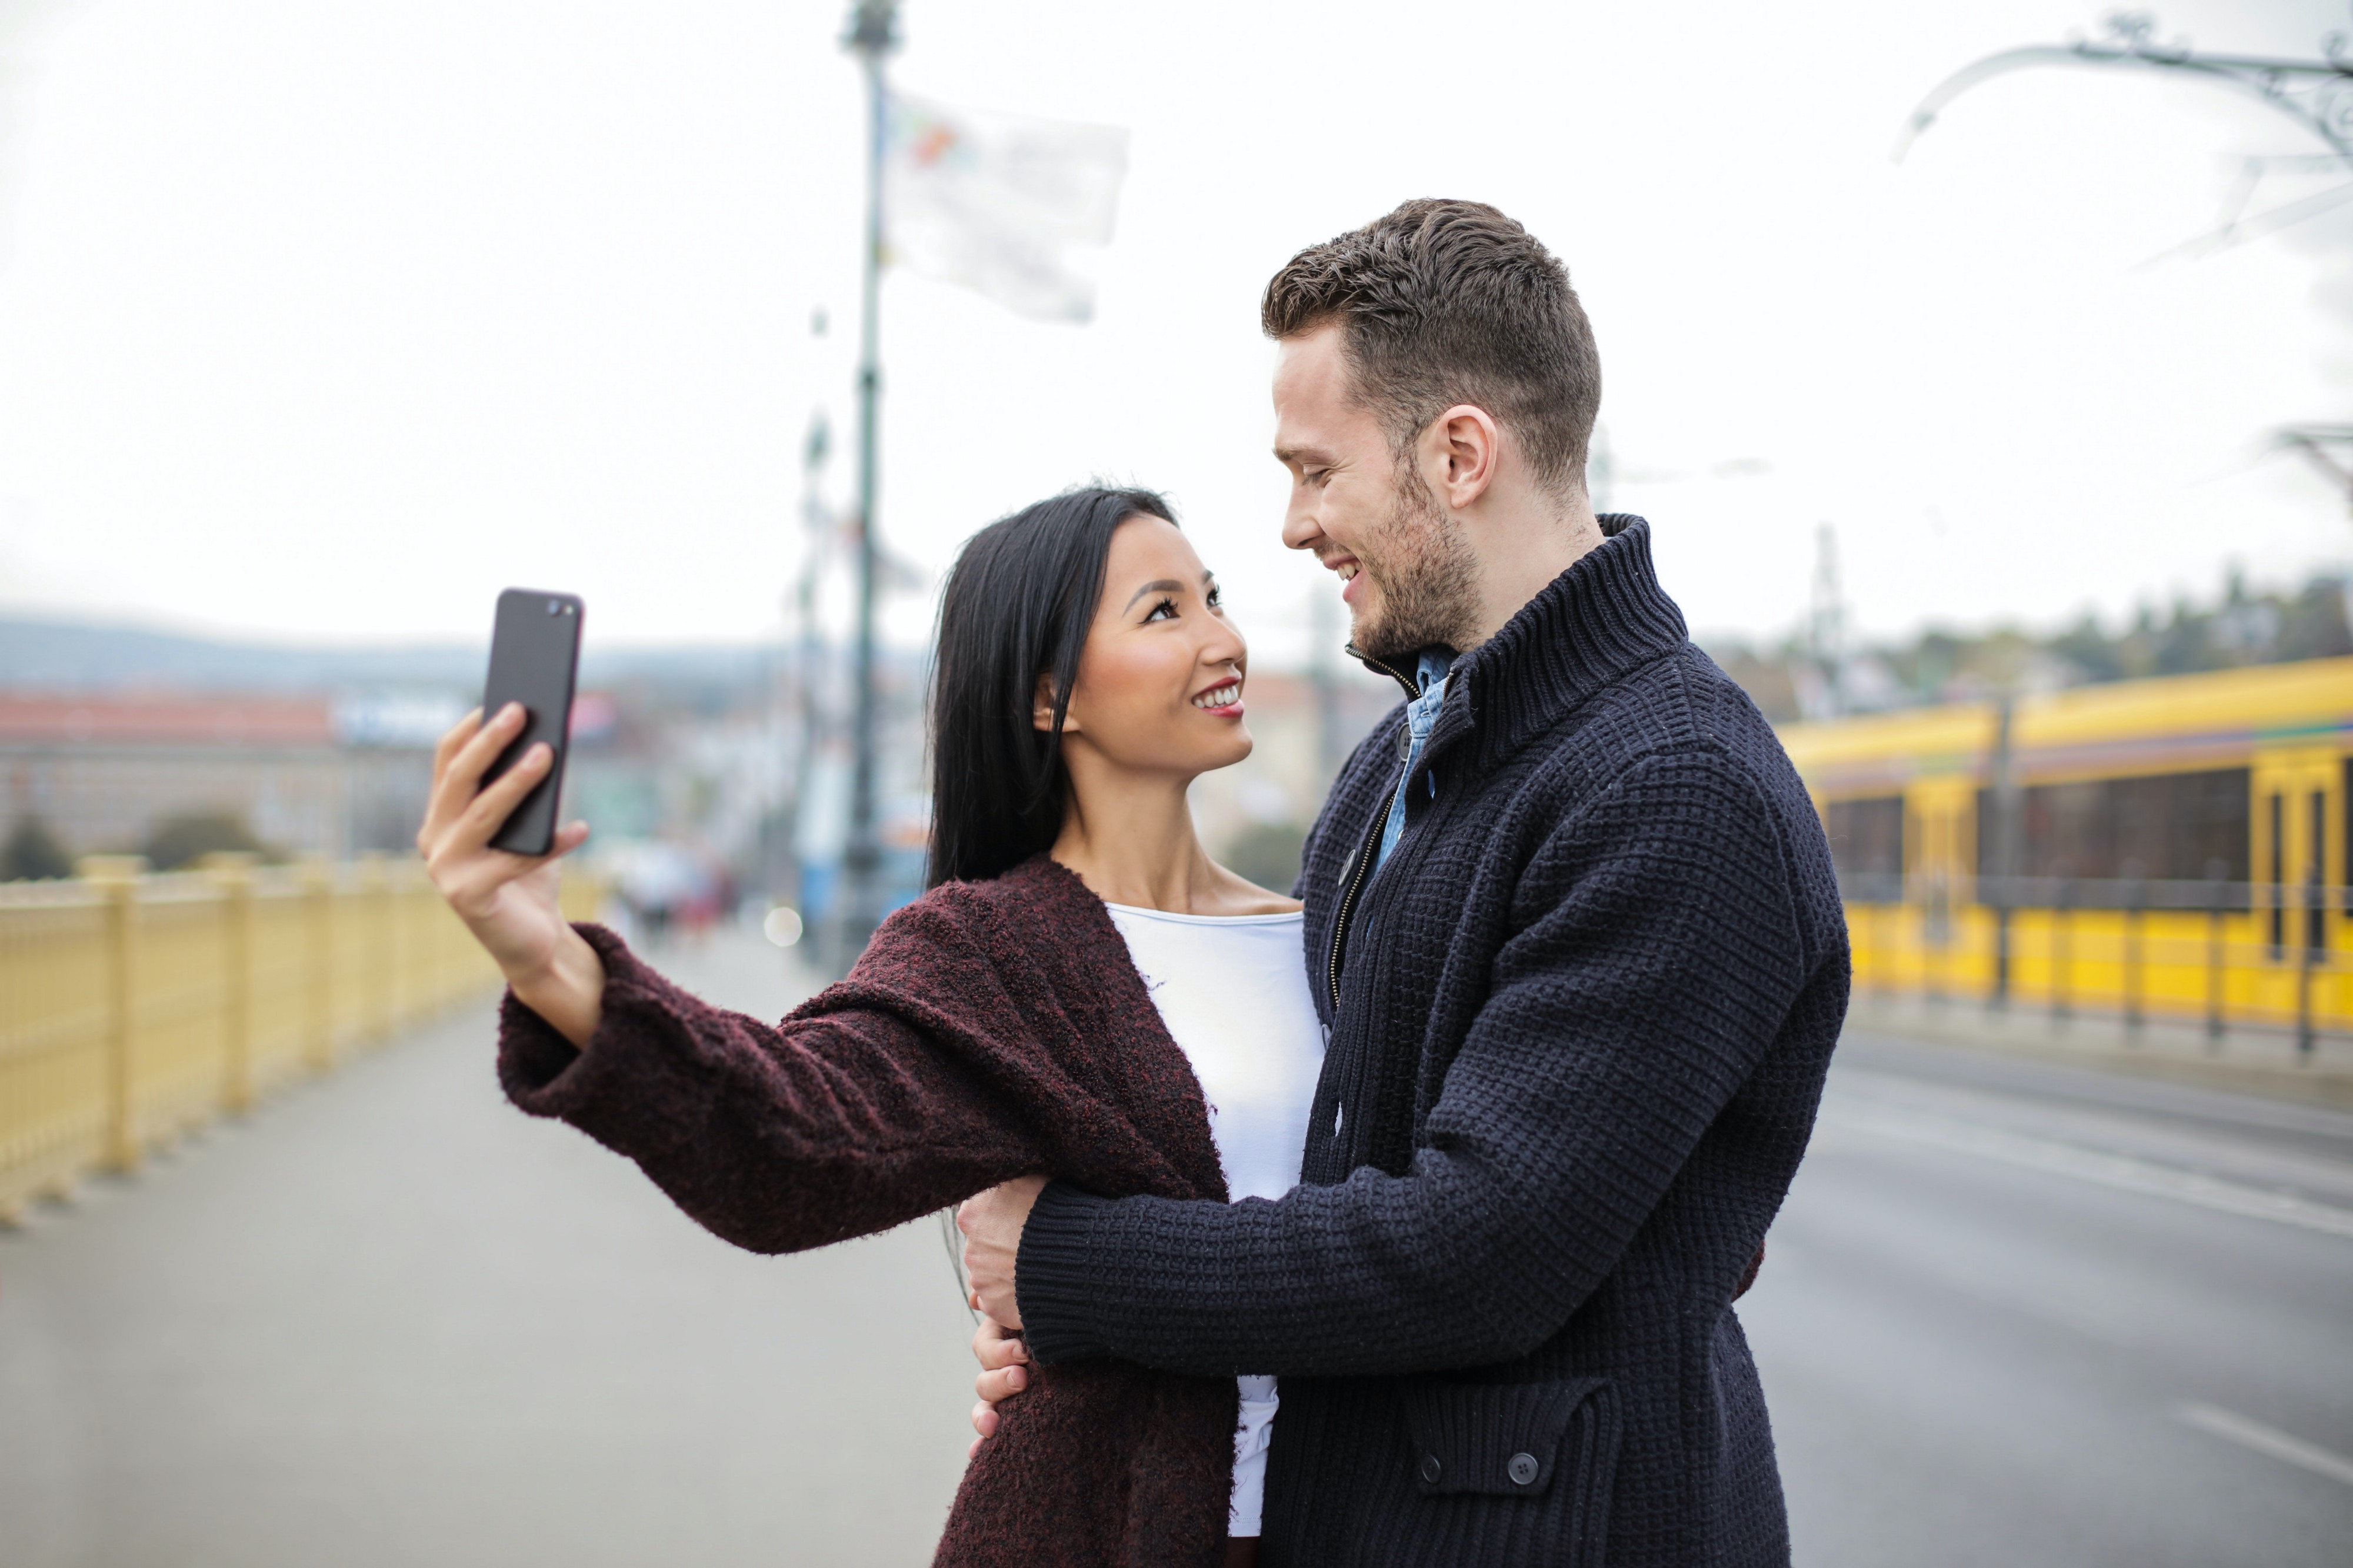 Woman holding phone, taking selfie with man